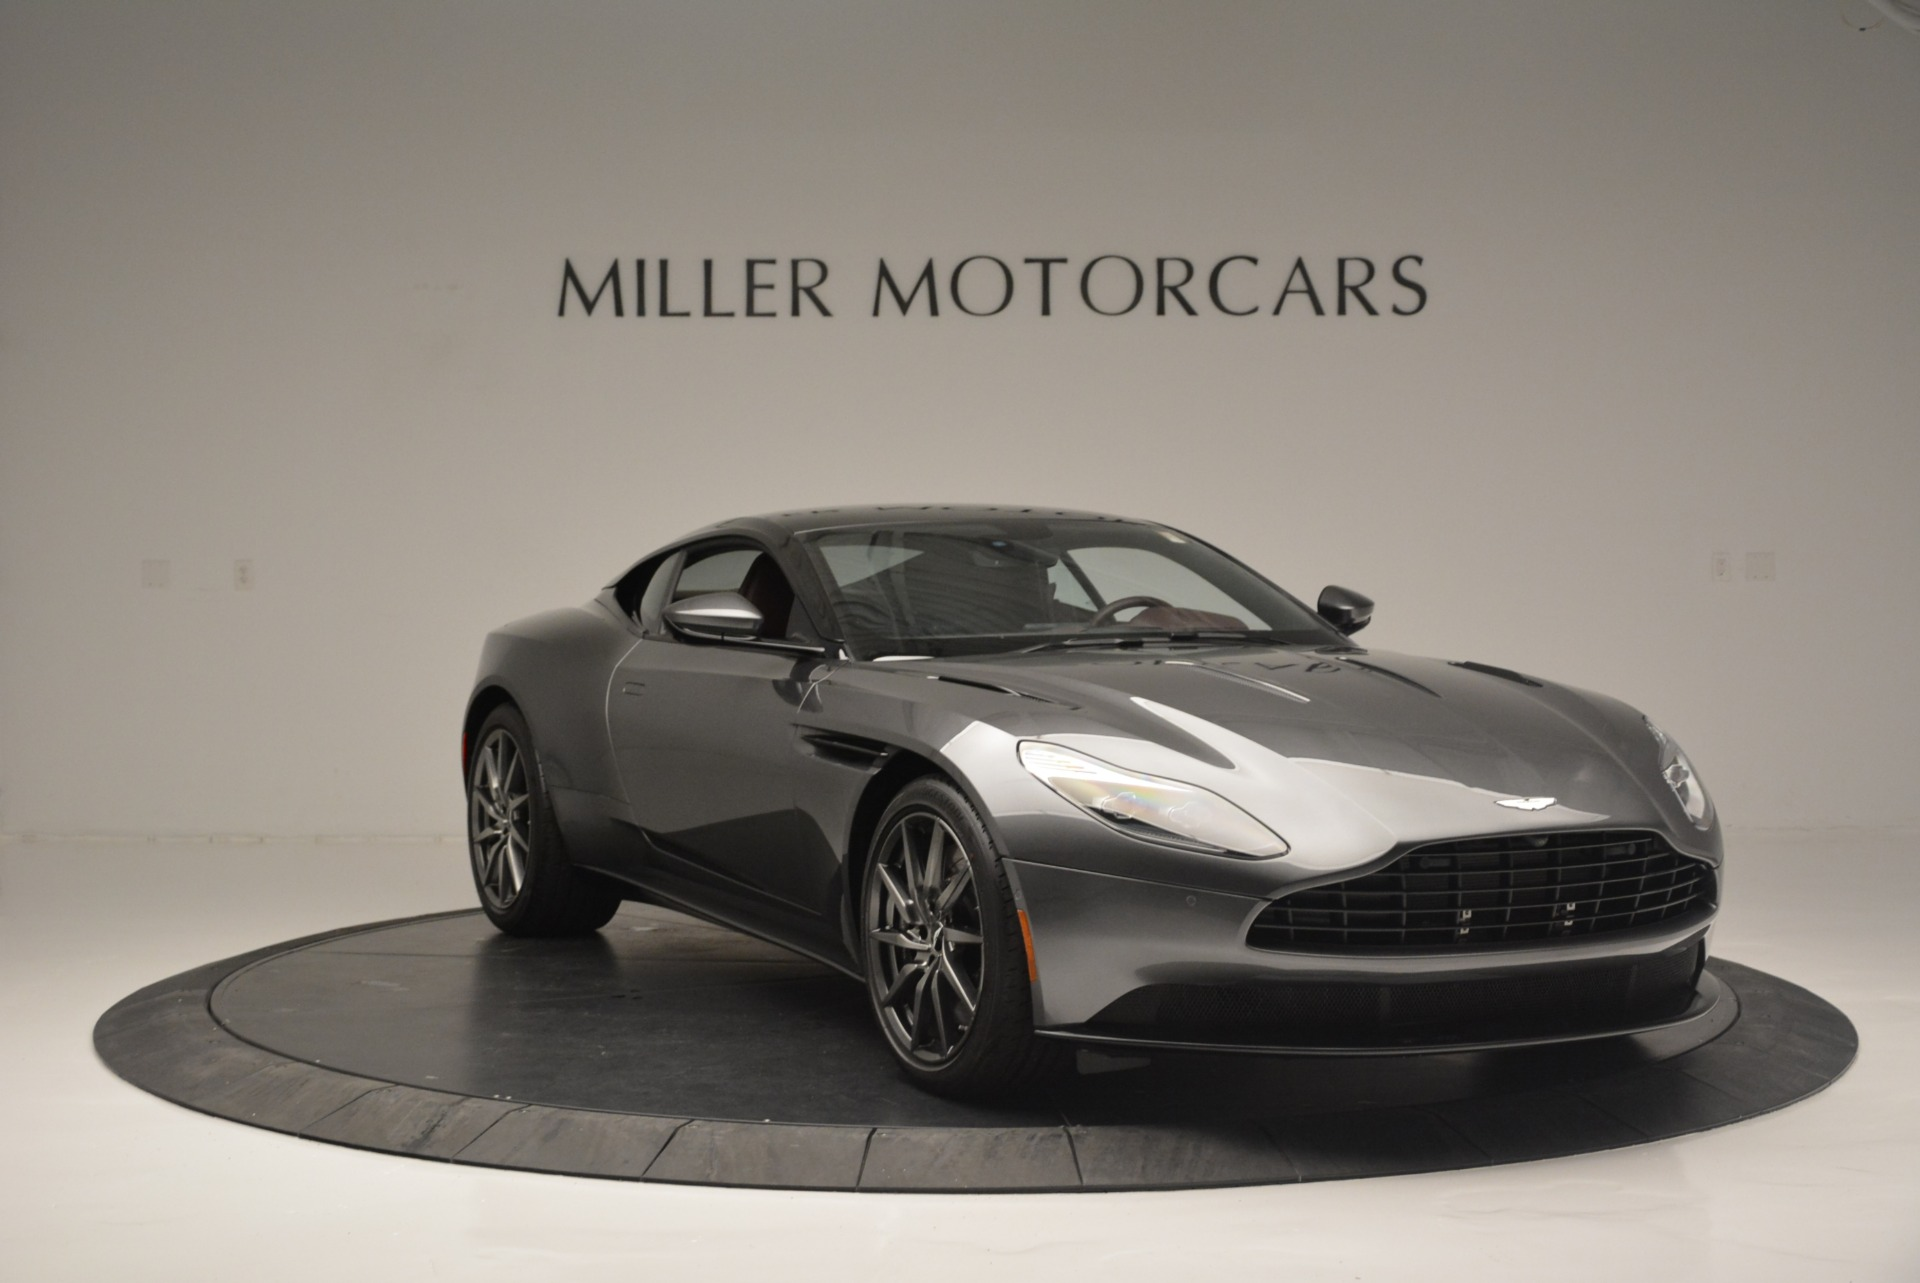 New 2018 Aston Martin DB11 V12 Coupe For Sale In Westport, CT 2364_p11